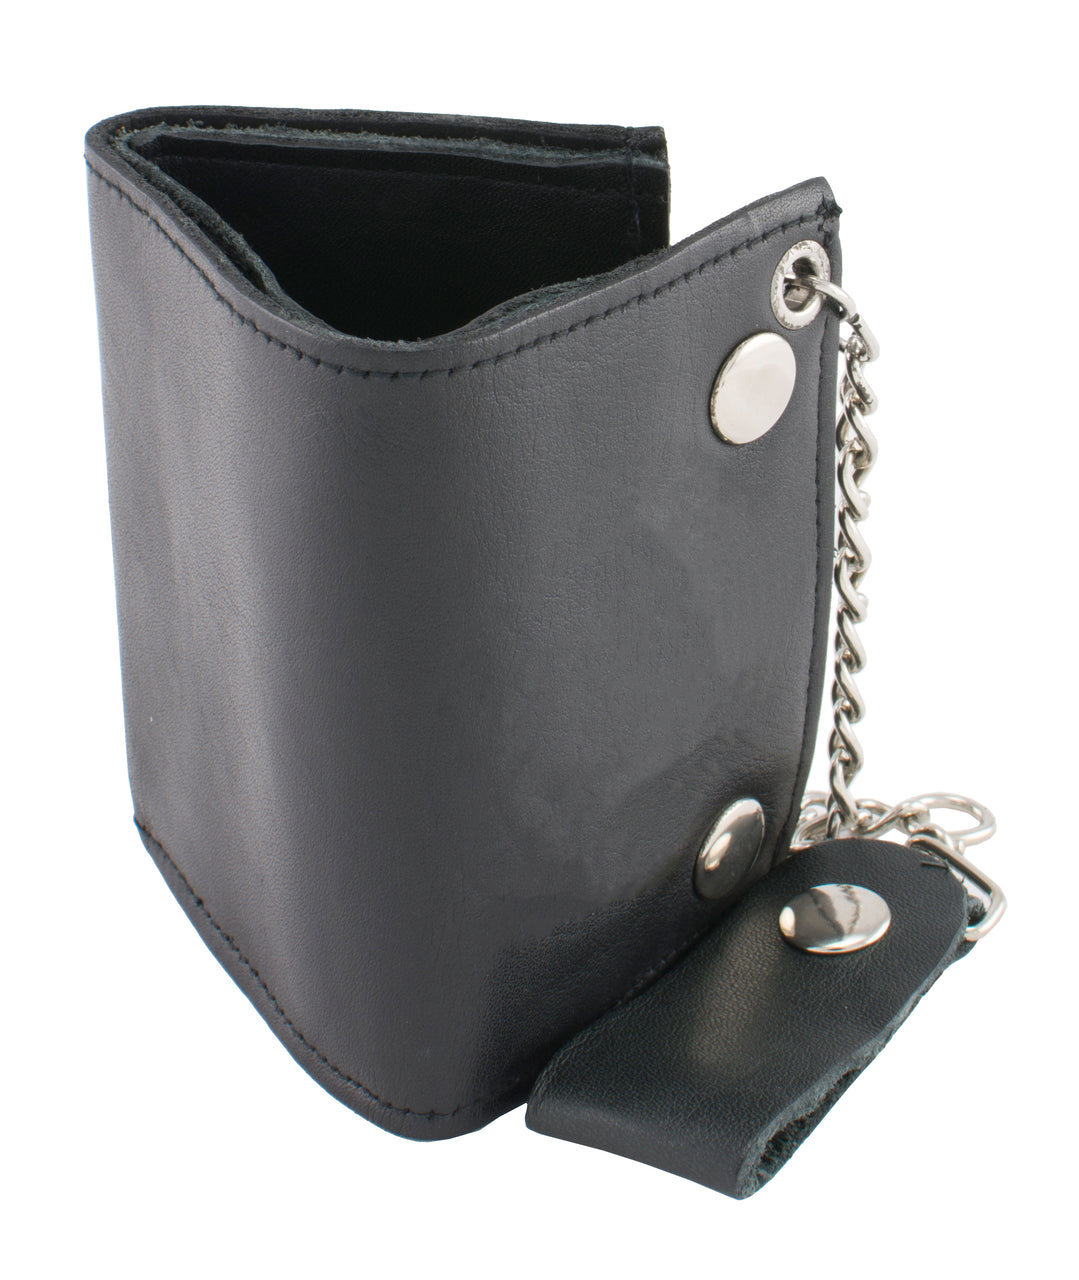 4X3 Men's Small Leather Tri-Fold Wallet w/ Steel Chain - HighwayLeather